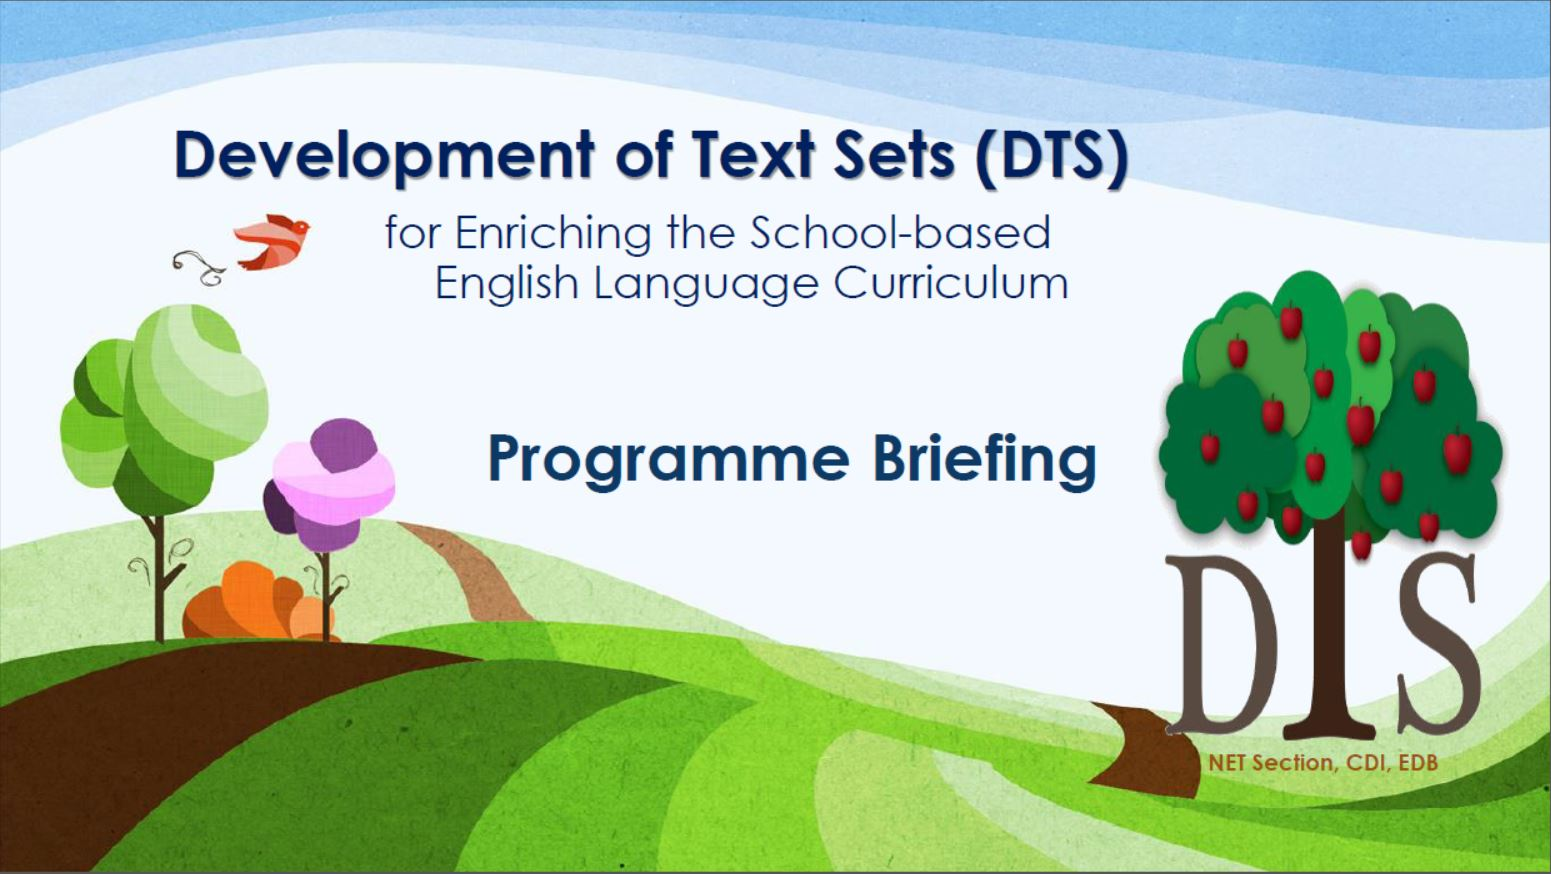 DTS Programme Briefing [PDF]